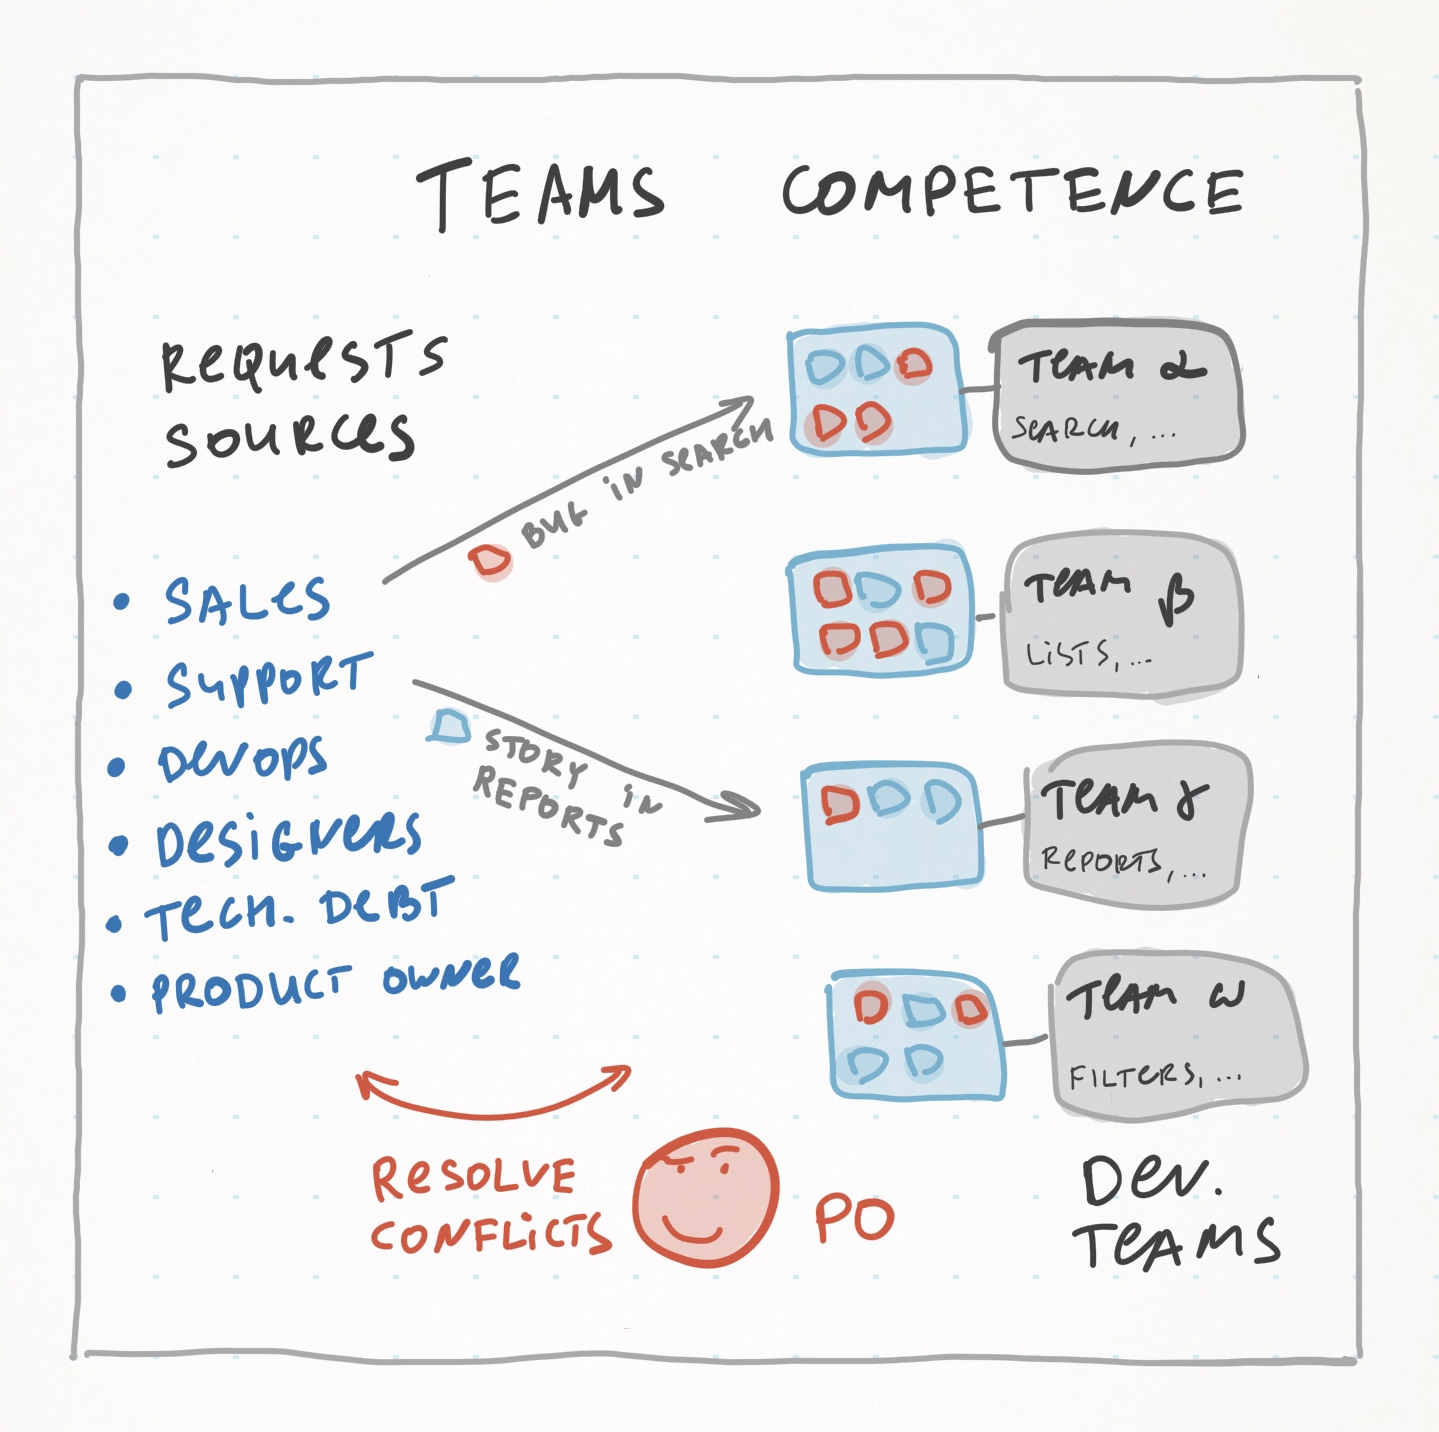 teams-competence